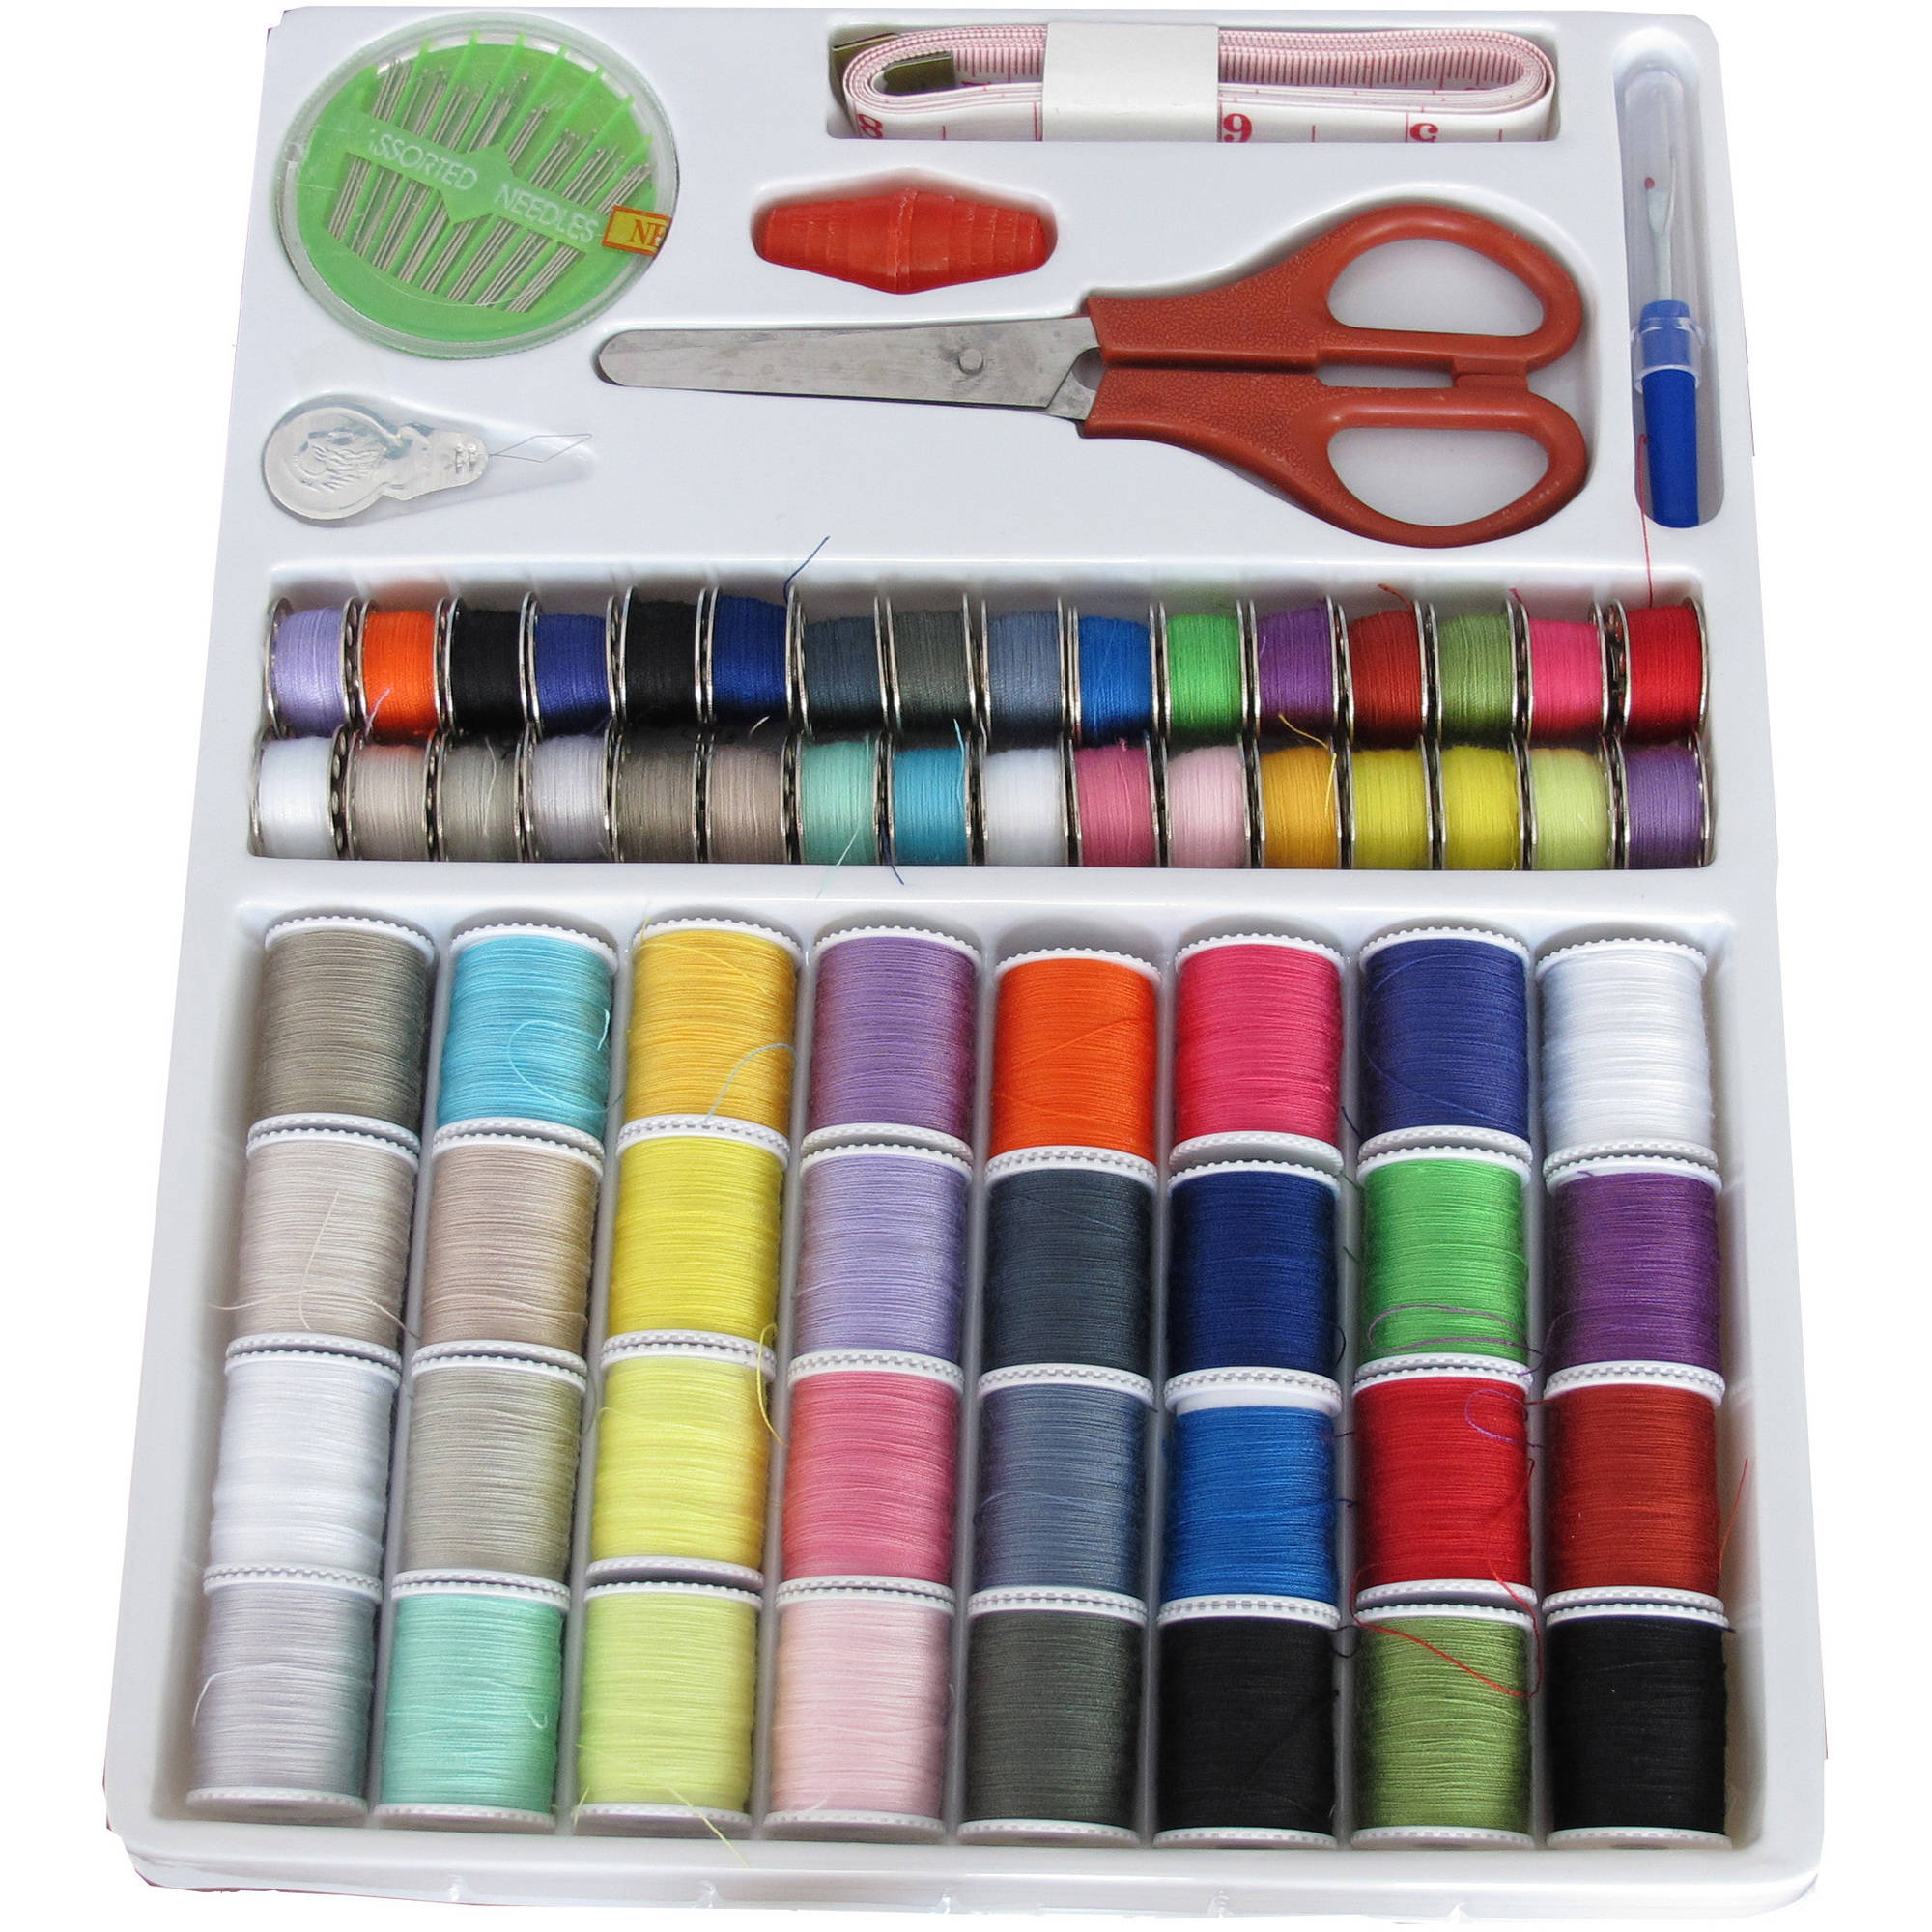 Michley 100-Piece Sewing Kit